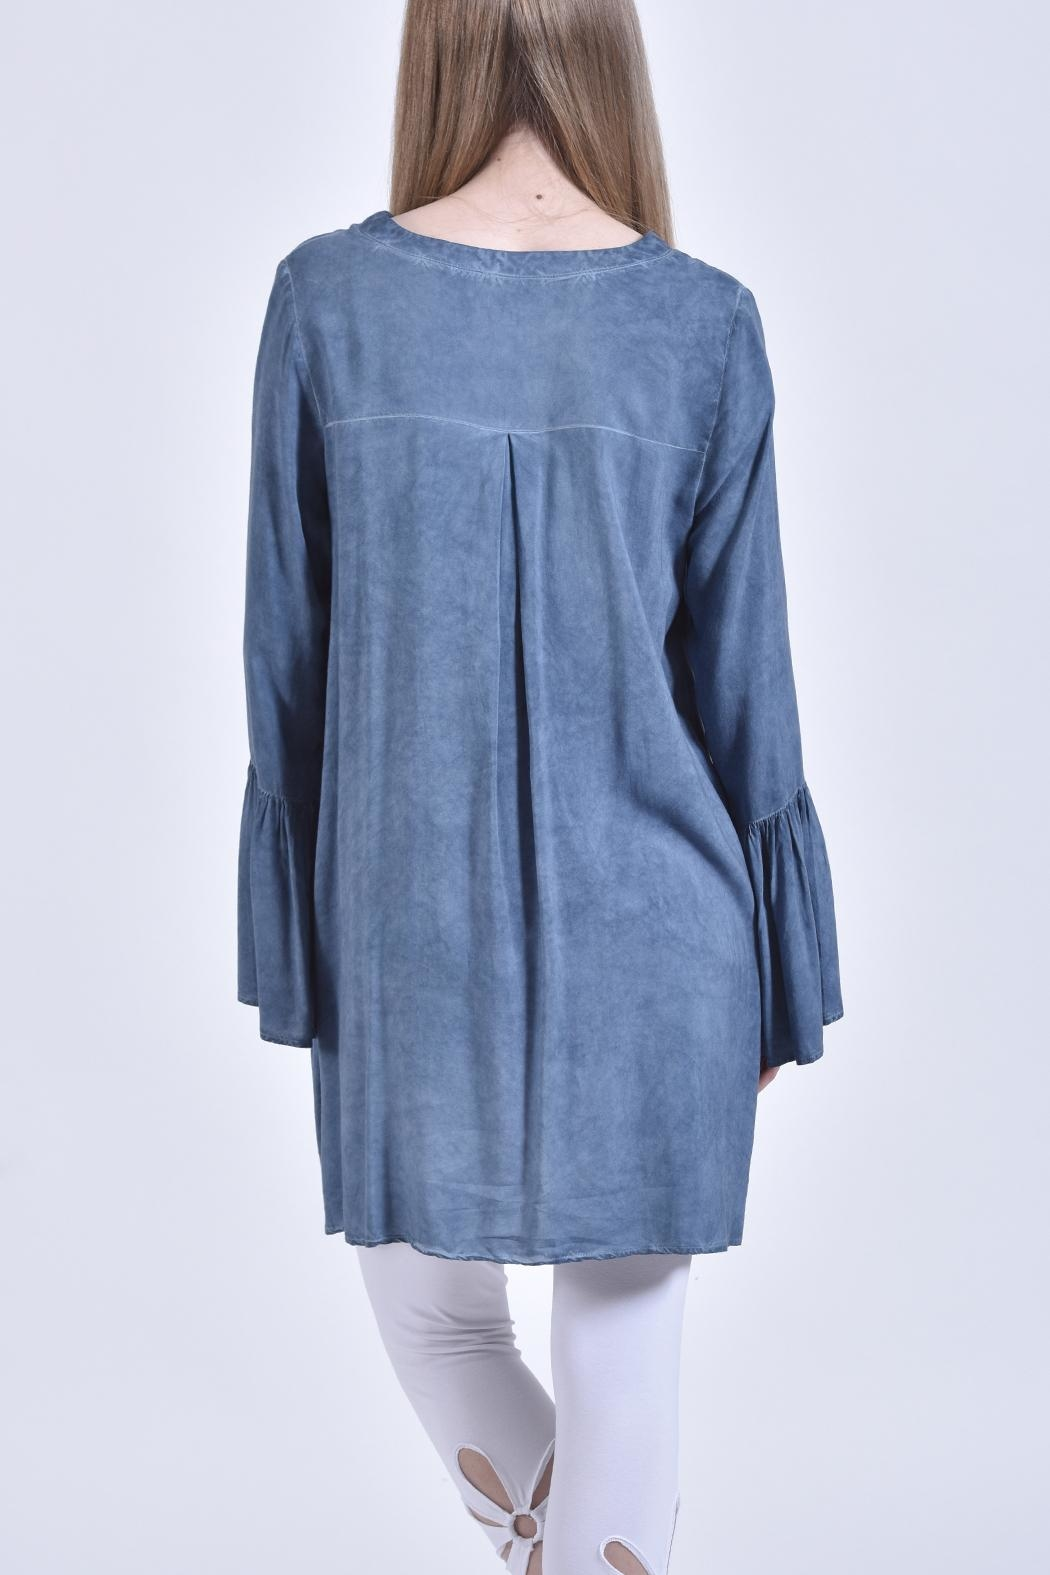 jane plus one Bell Sleeve Blouse - Front Full Image